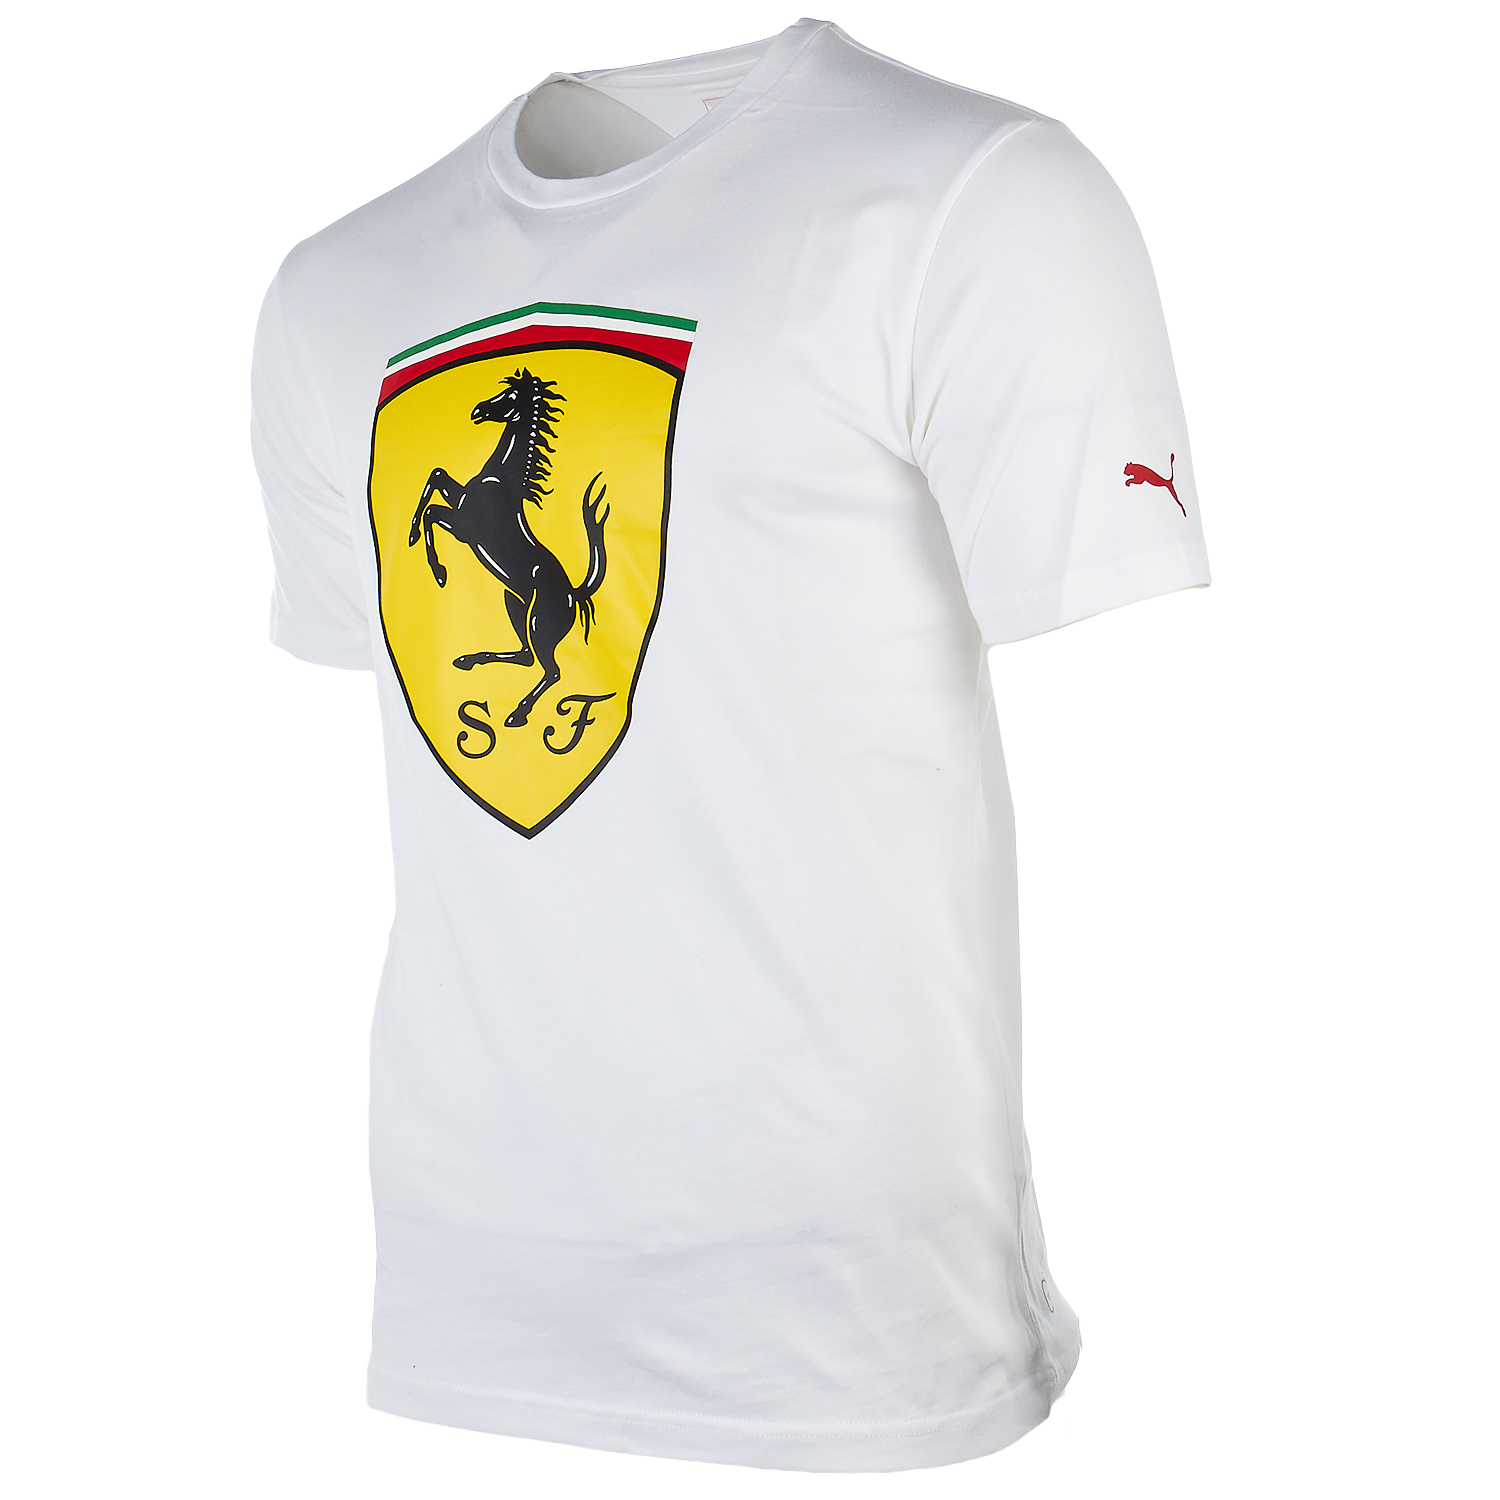 vent activities tops gecko speeder tshirt tees w web mens long graphic the surf puma t ferrari sp shirt pwrcool sleeve rosso corsa grn promotional